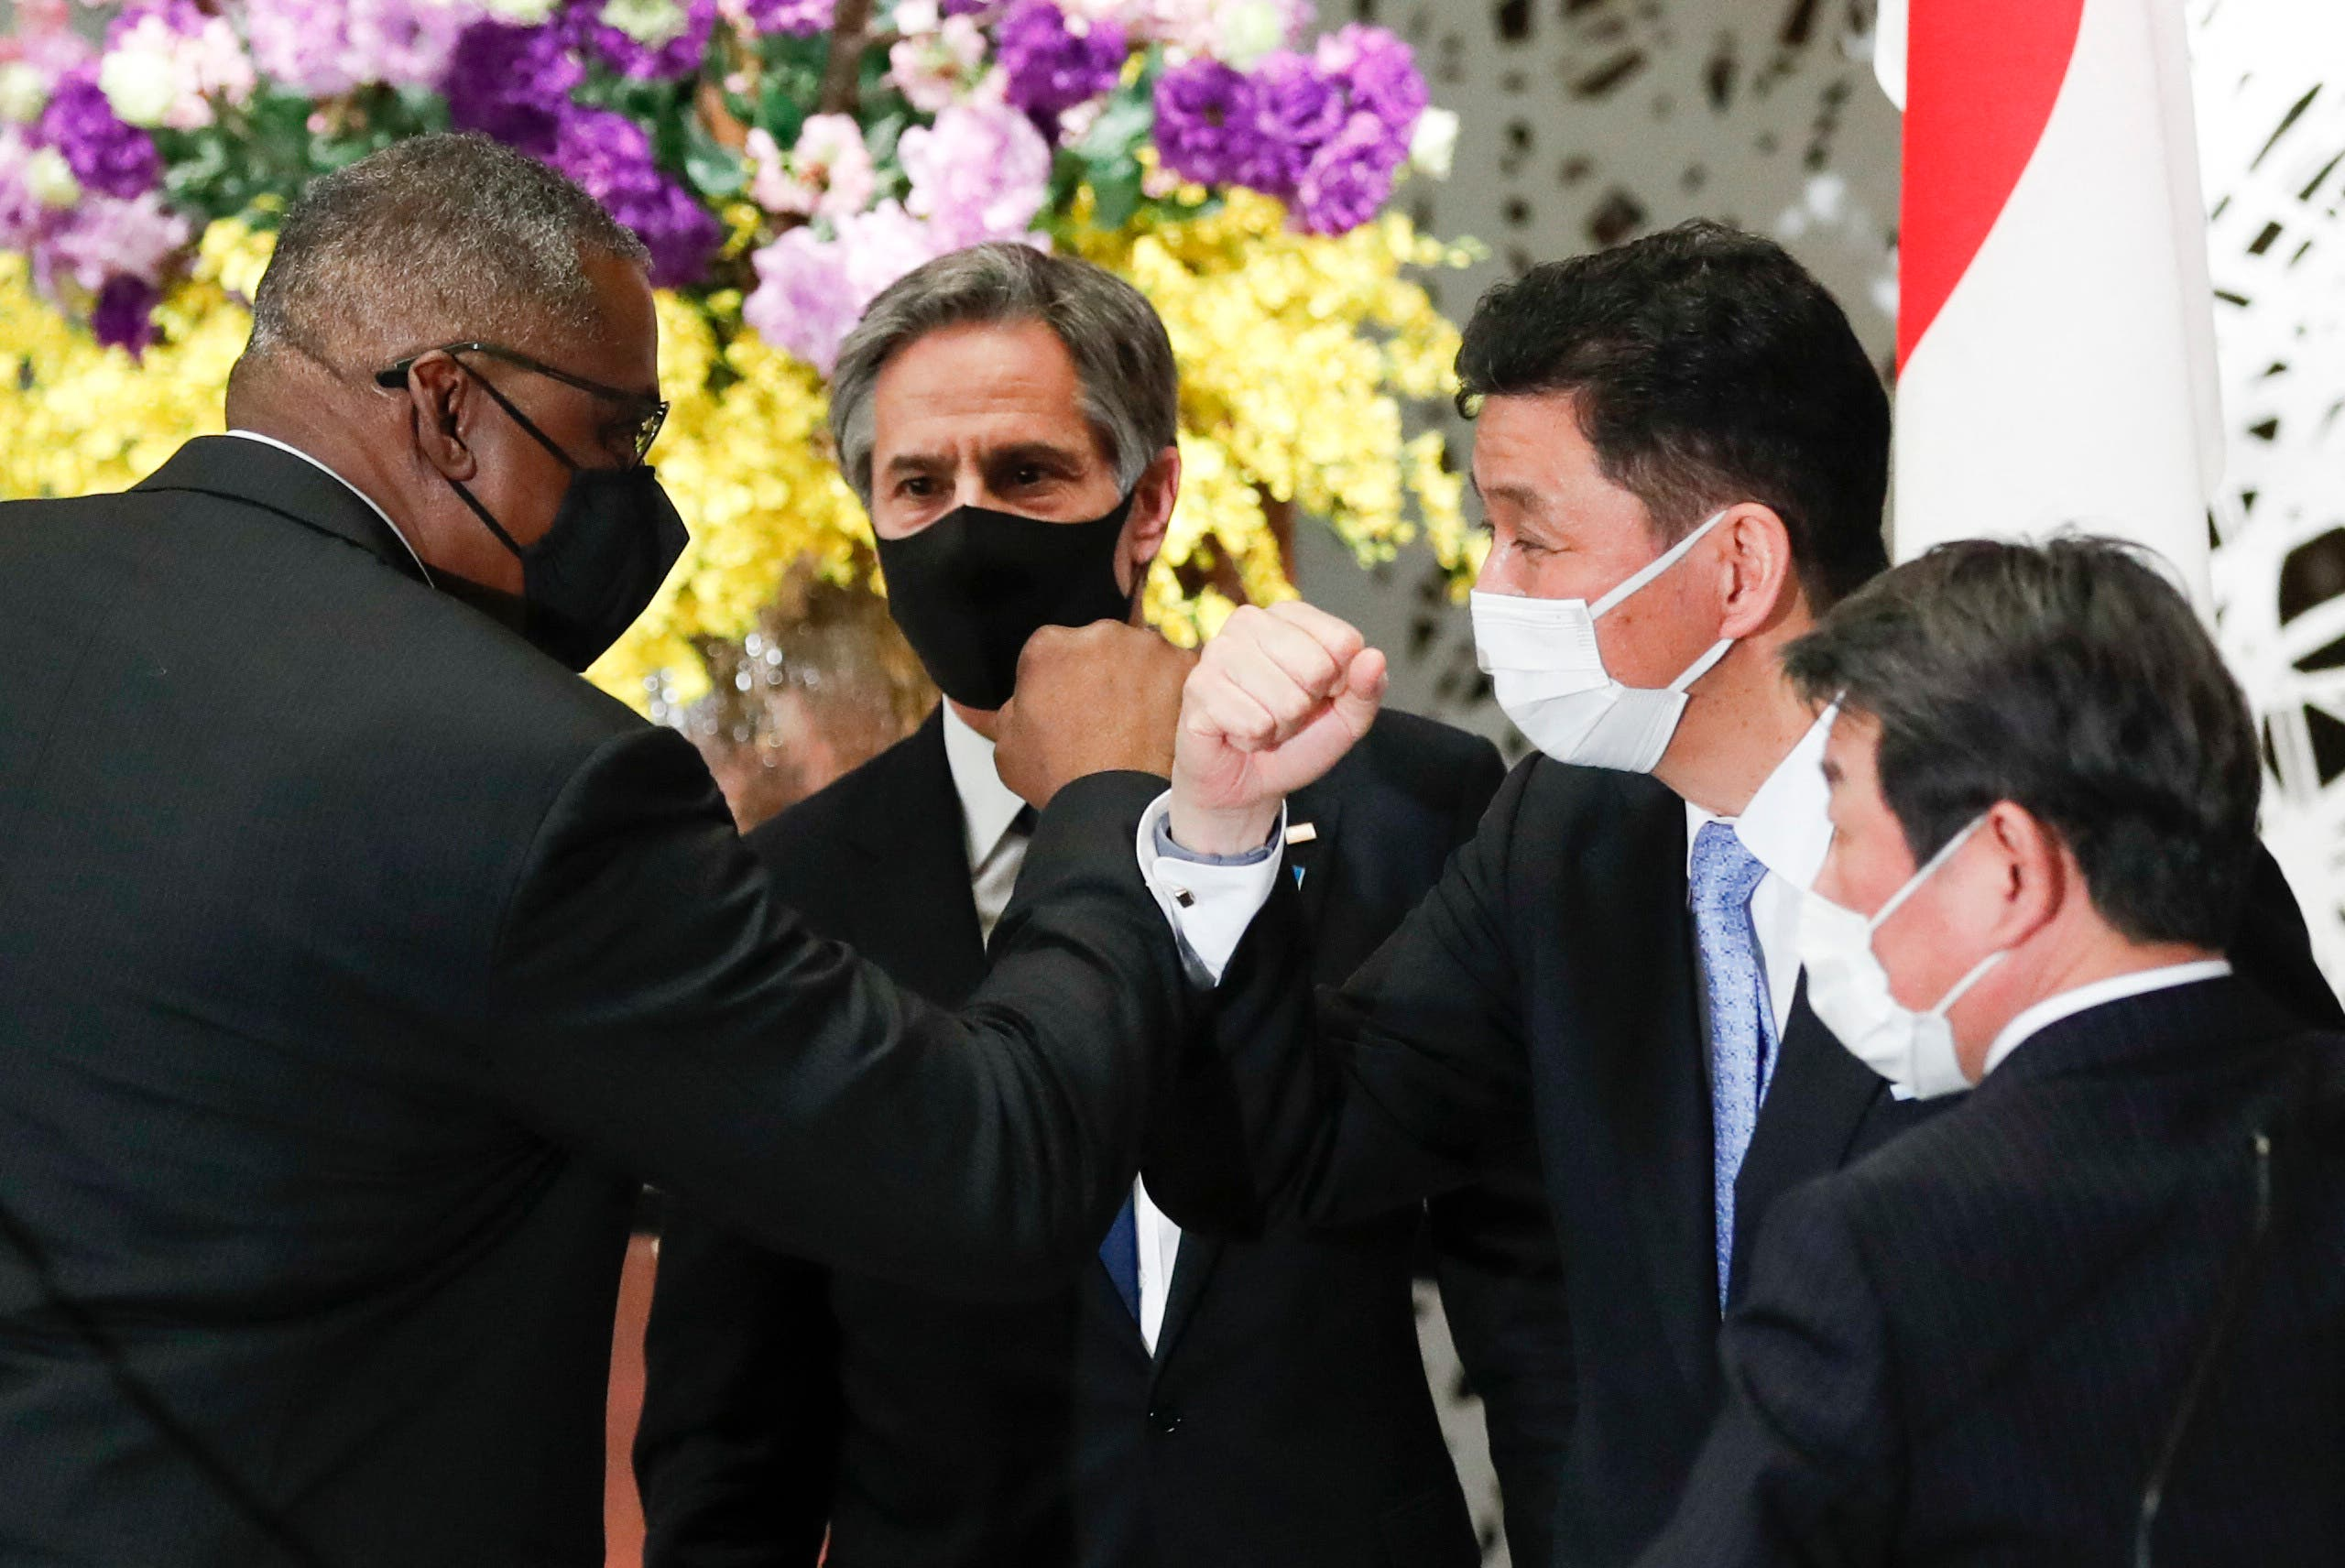 US Secretary of State Antony Blinken and Defense Secretary Lloyd Austin leave after their joint press conference with Japan's Foreign Minister Toshimitsu Motegi and Defence Minister Nobuo Kishi. (AFP)